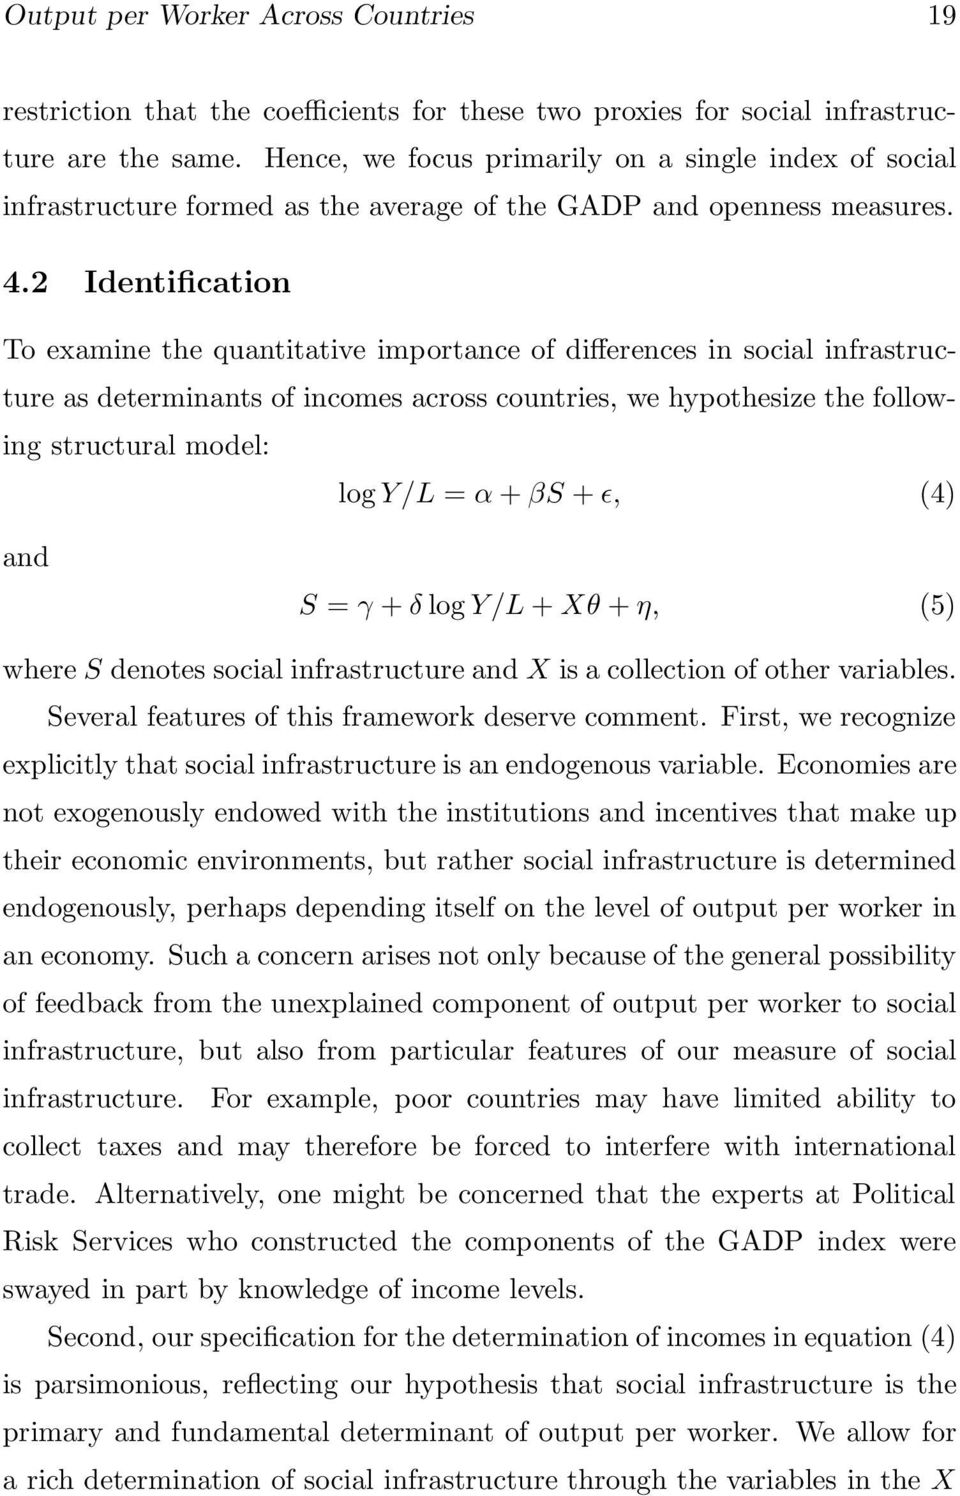 2 Identification To examine the quantitative importance of differences in social infrastructure as determinants of incomes across countries, we hypothesize the following structural model: log Y/L = α